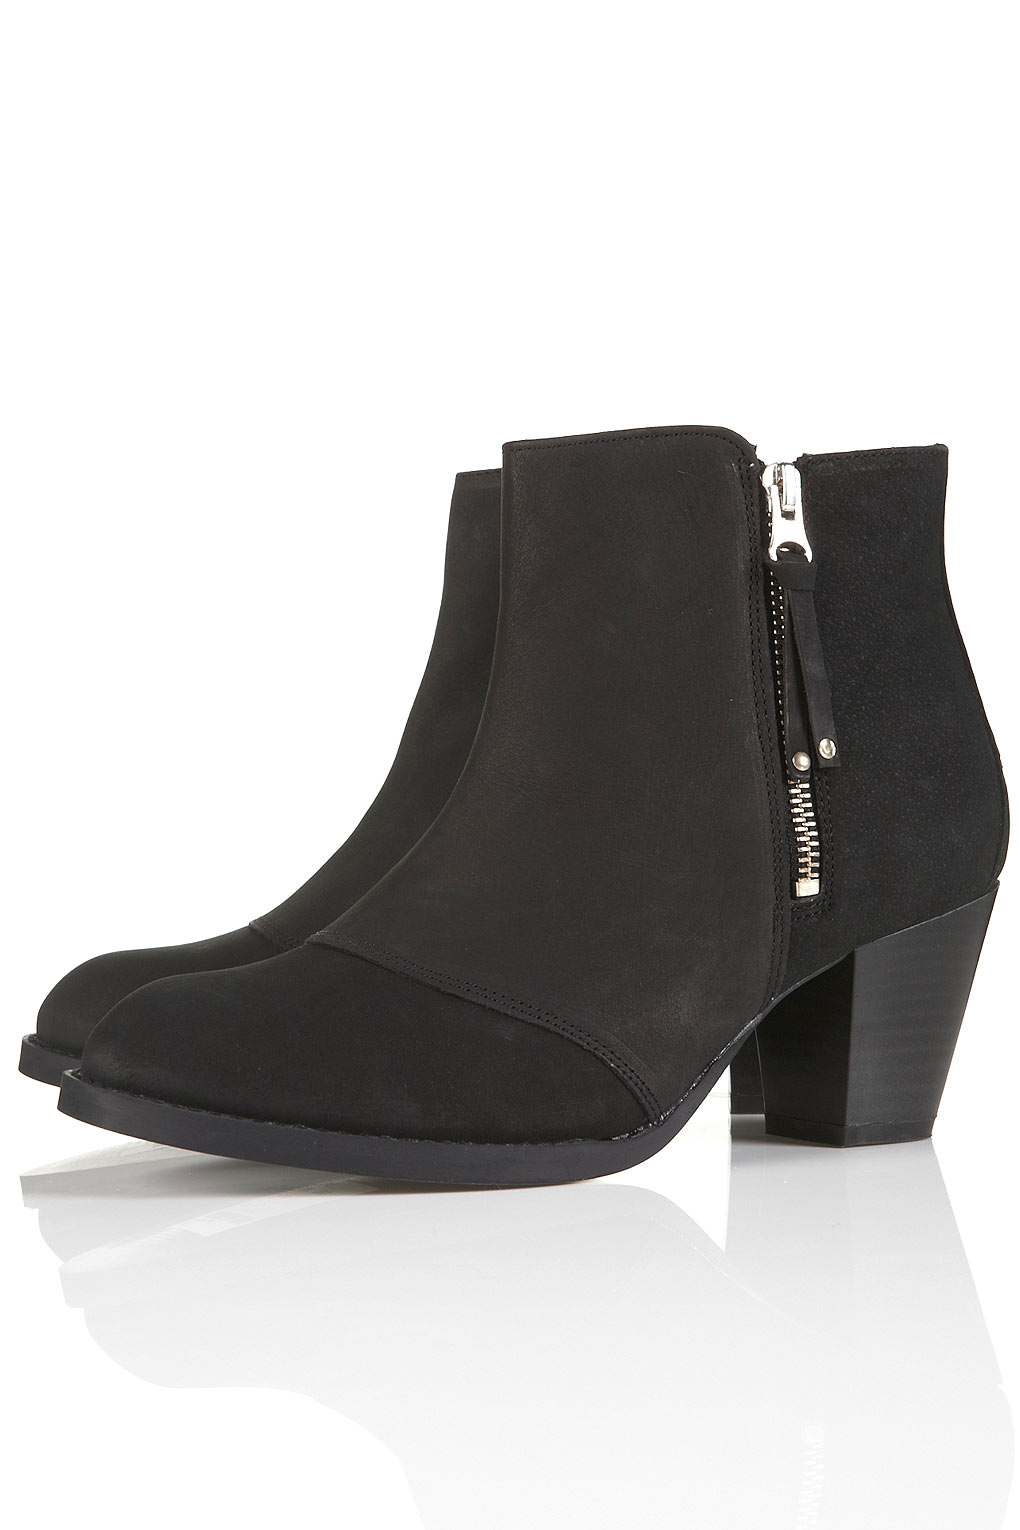 Topshop Mighty Black Leather Zip Boots in Black | Lyst